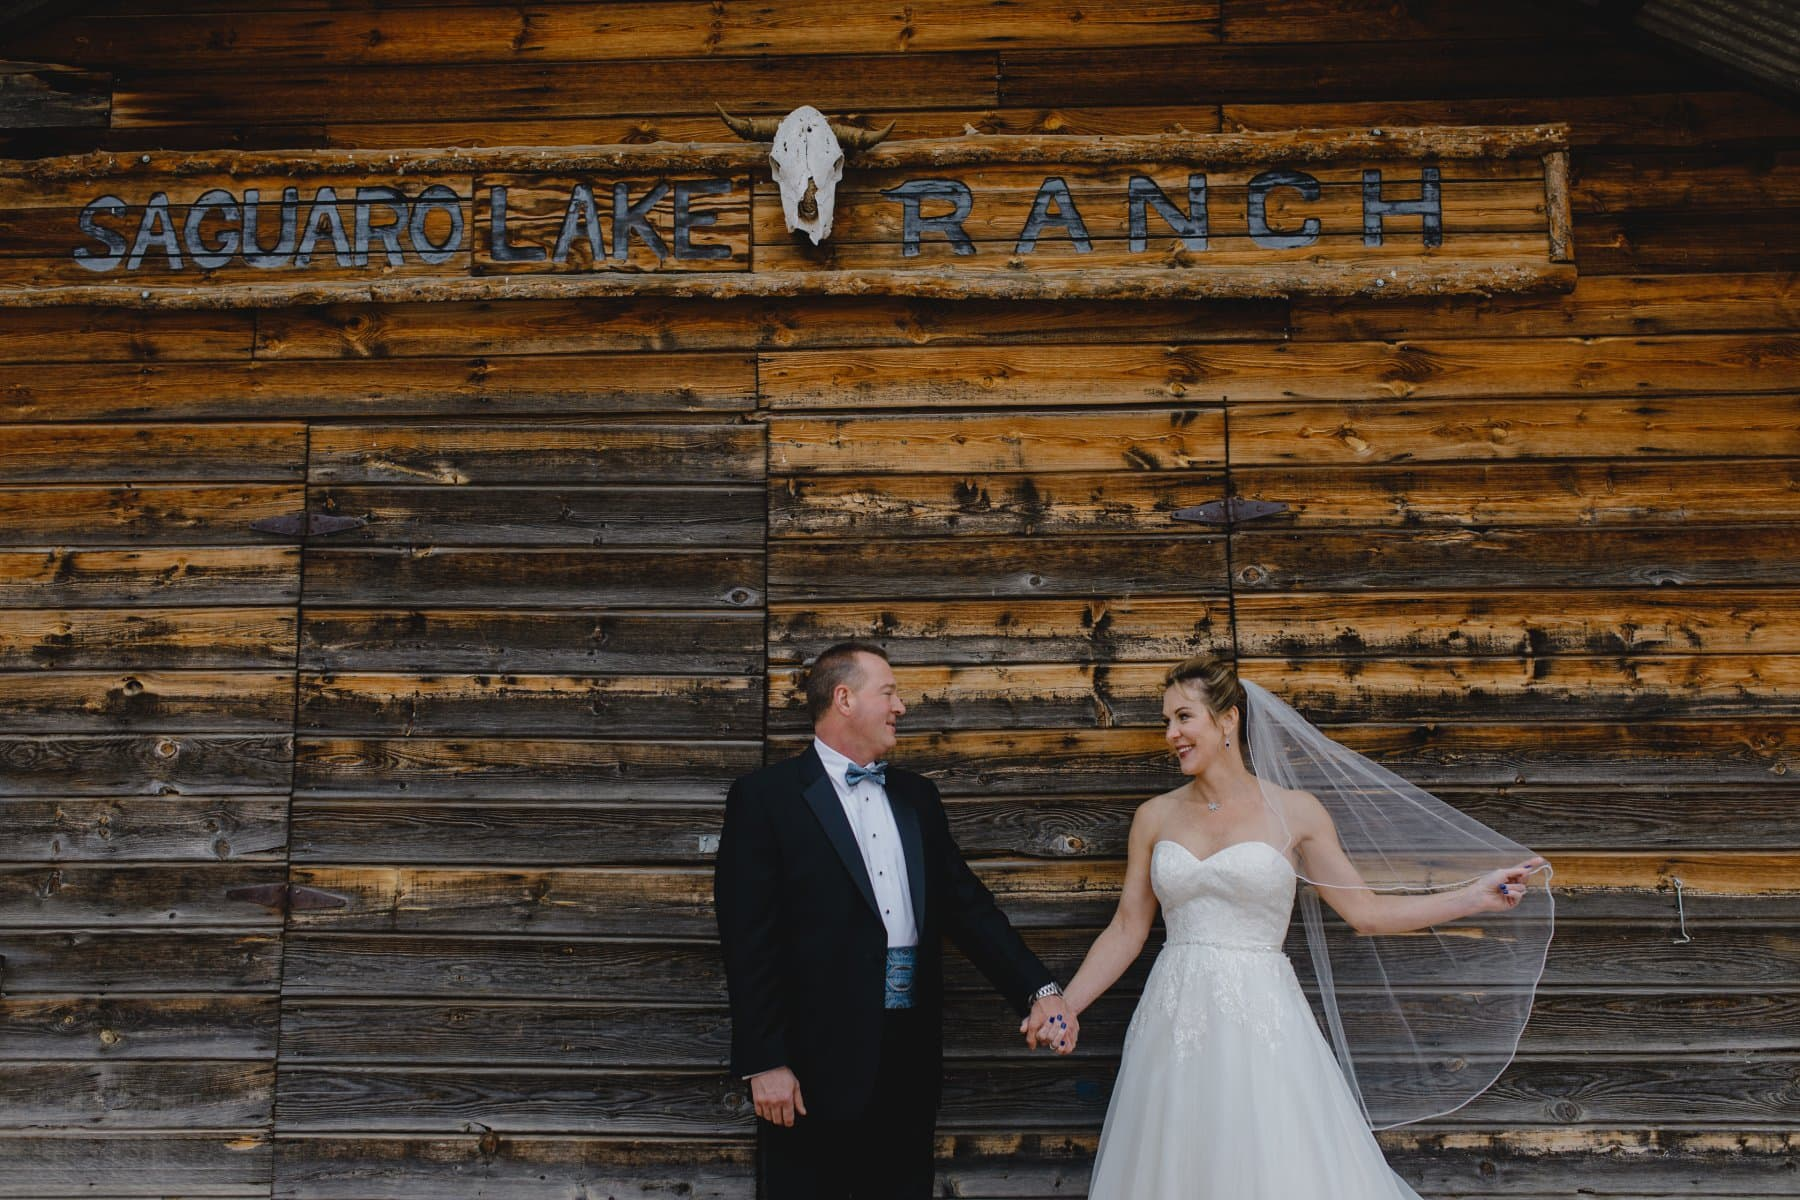 cute rustic wedding venue Saguaro Lake Ranch in Arizona